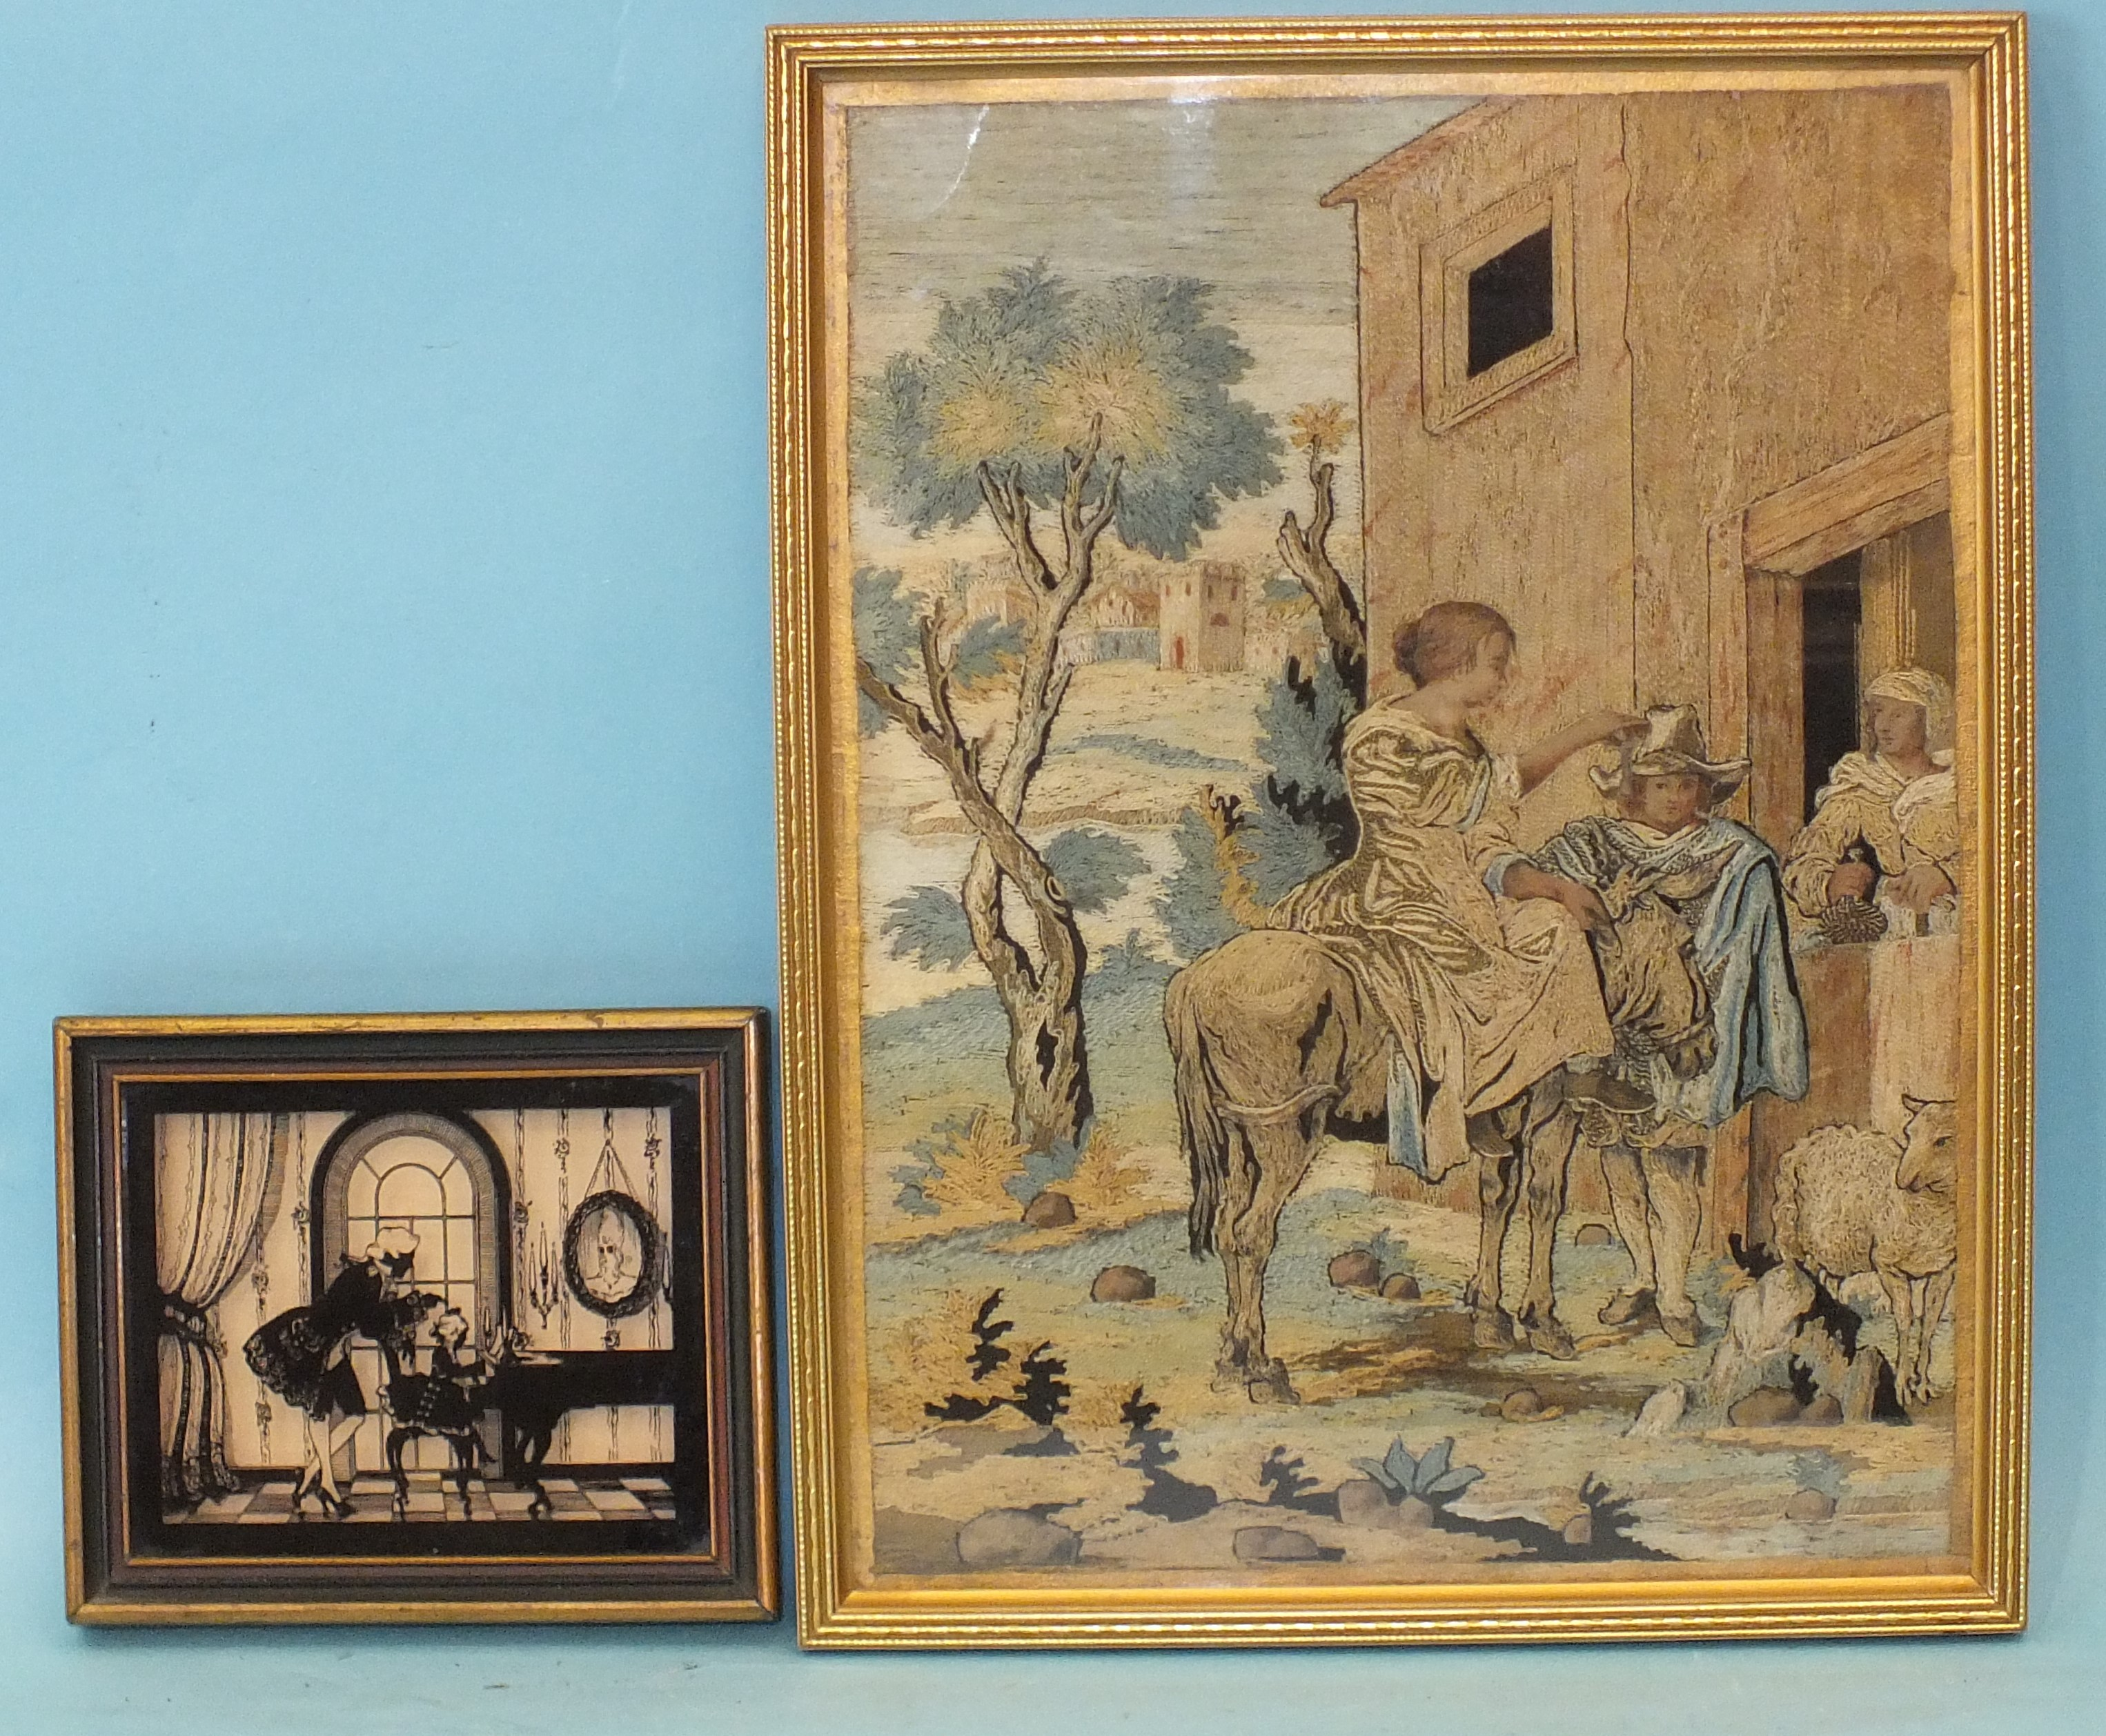 A 19th century needlework panel, with figures, a donkey, sheep and a village behind, 28 x 20cm and a